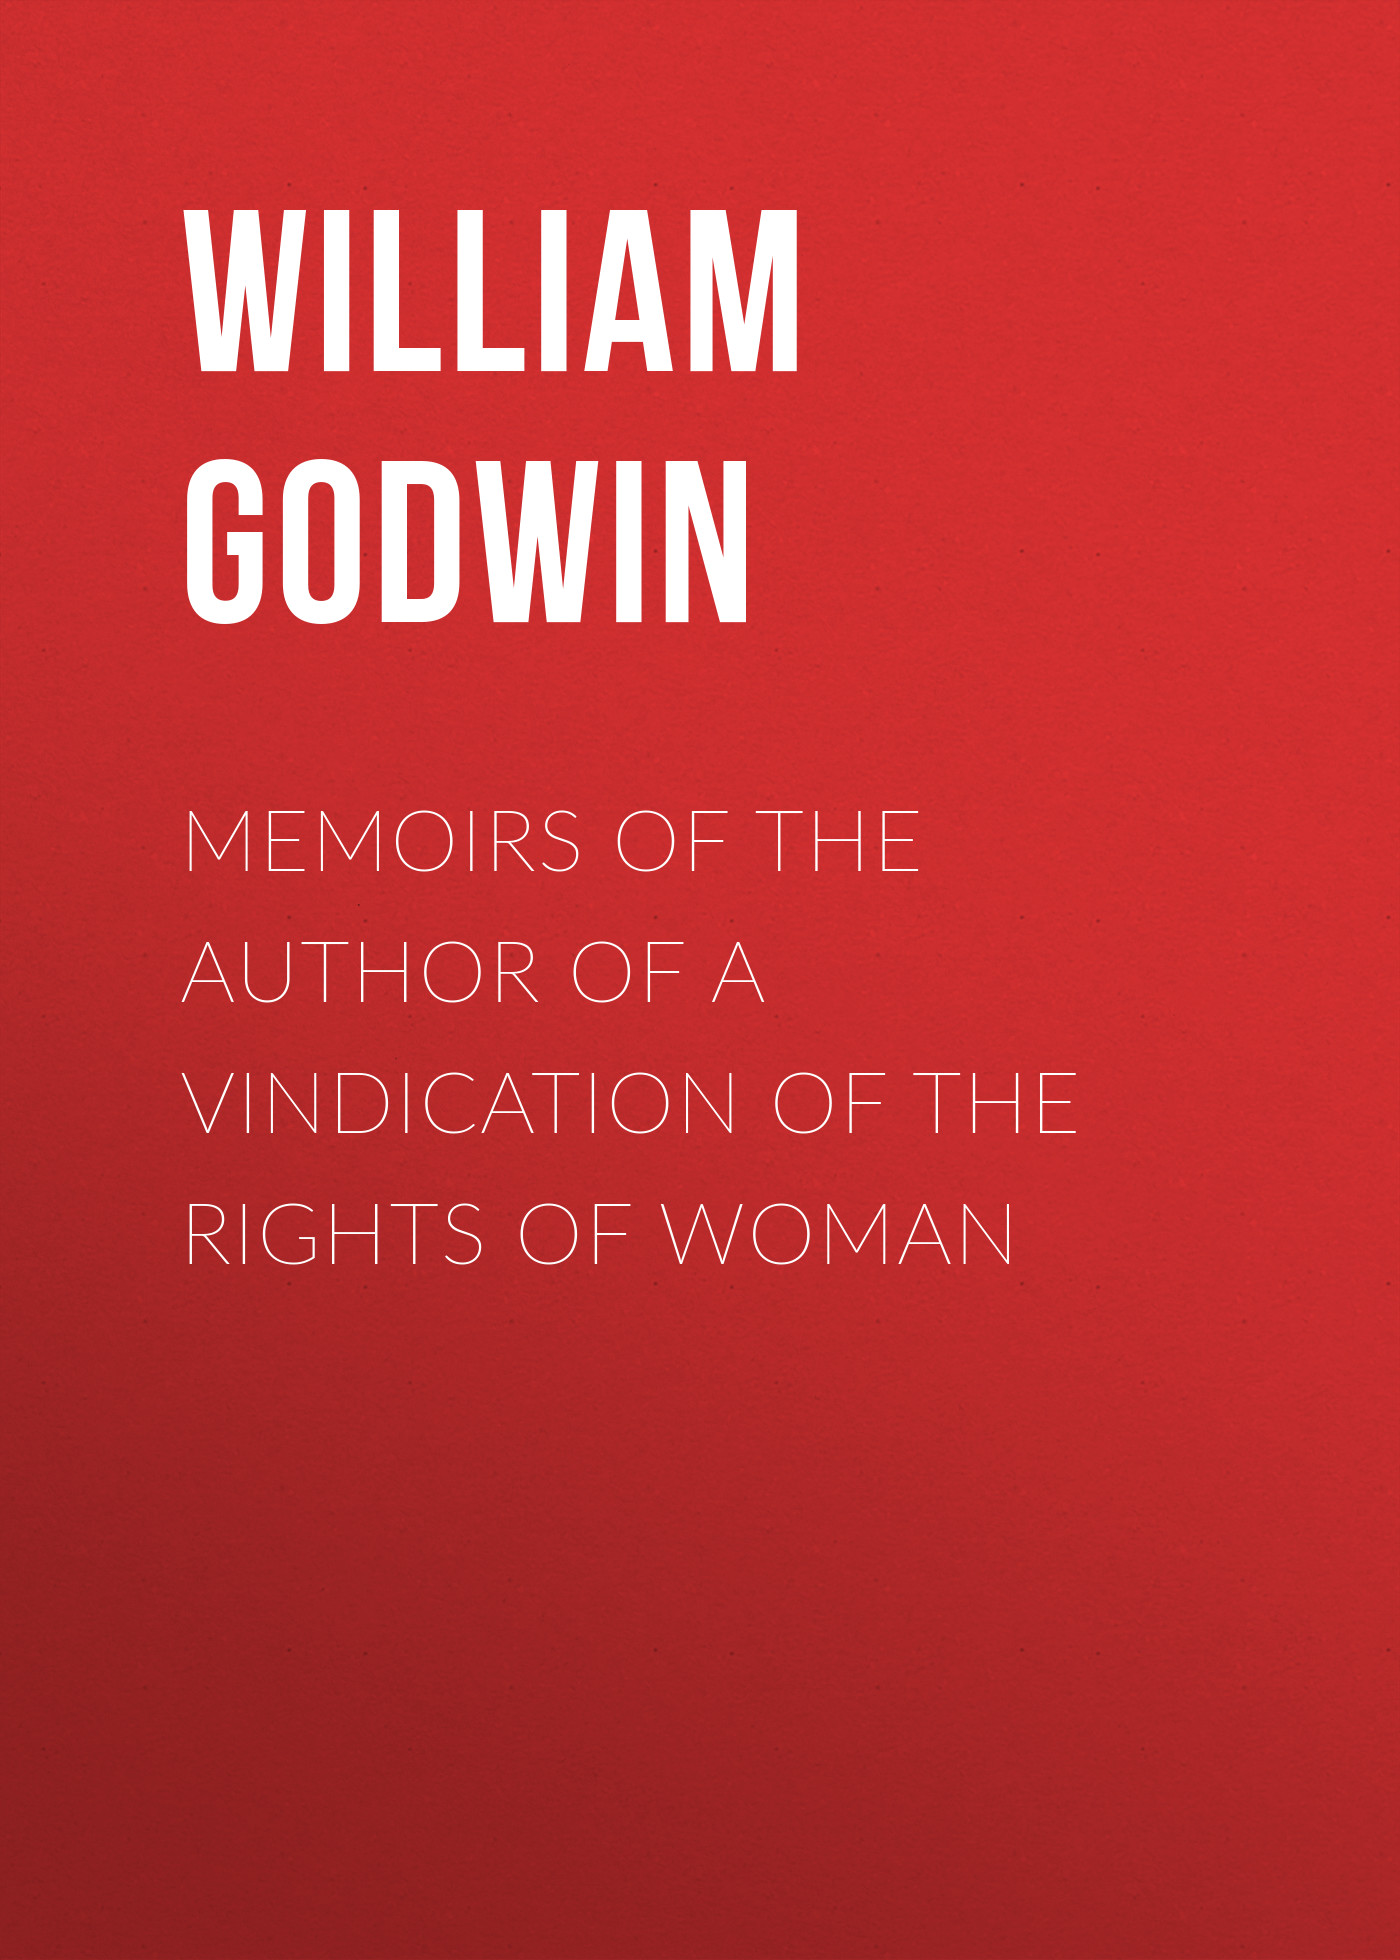 William Godwin Memoirs of the Author of a Vindication of the Rights of Woman walter de la mare memoirs of a midget